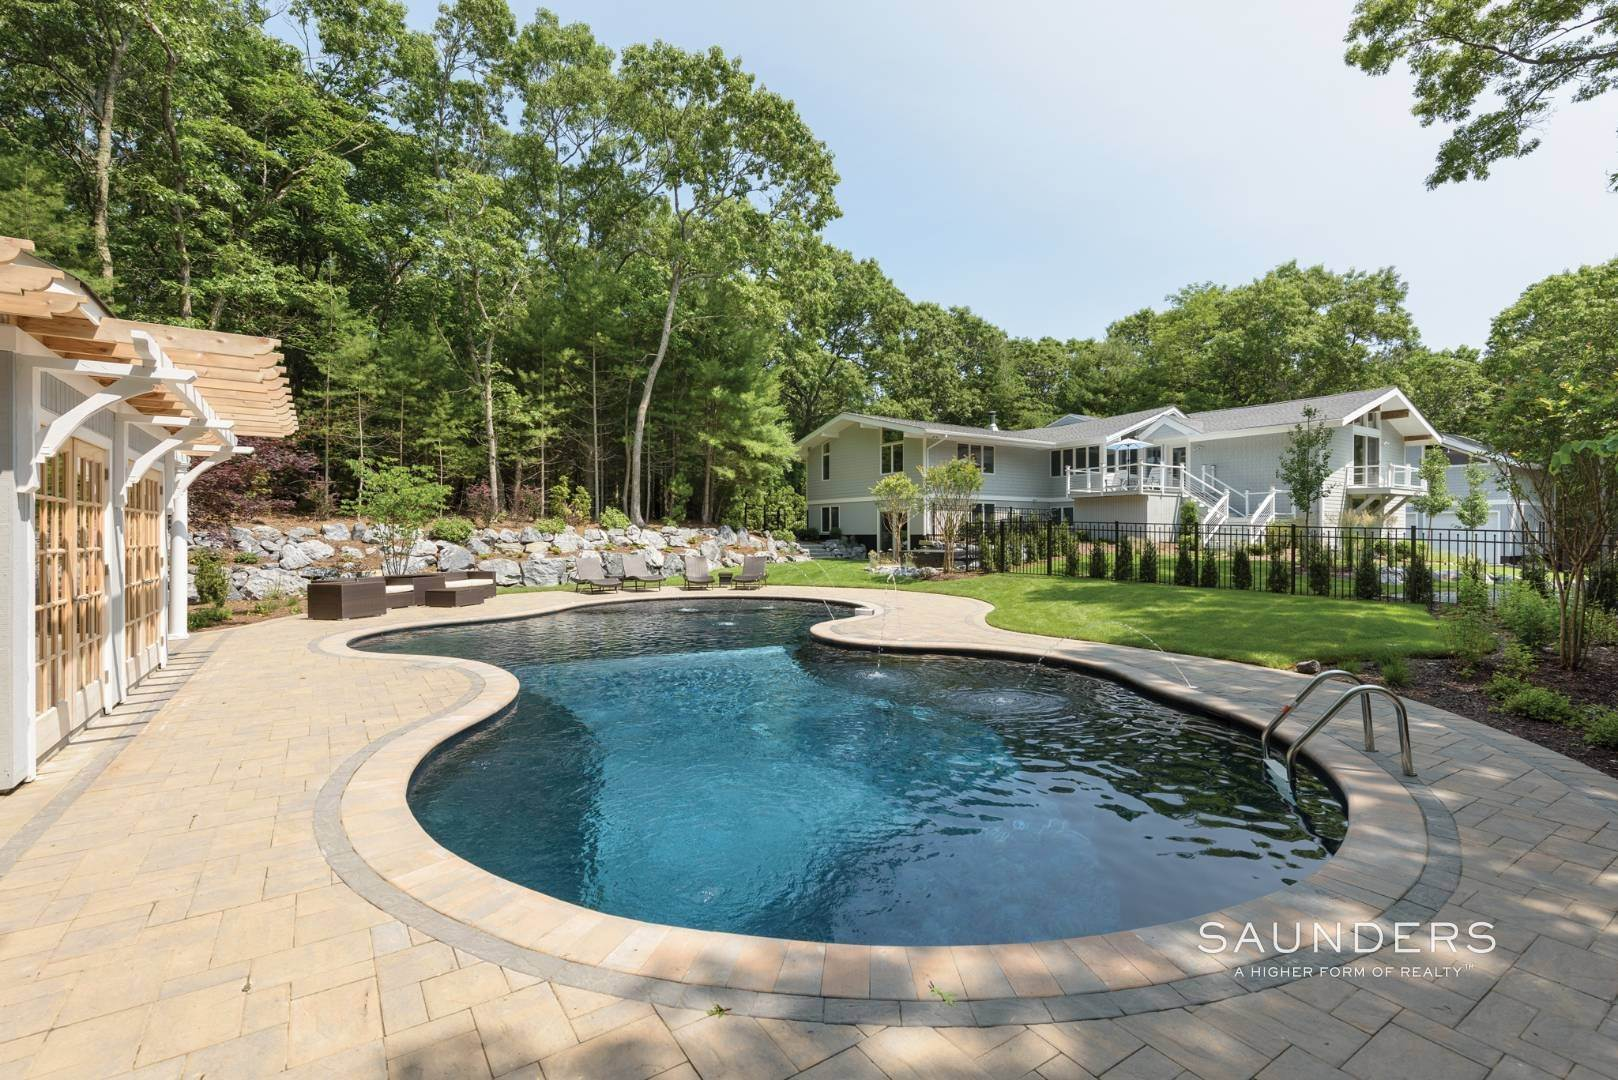 Single Family Homes for Sale at Newly Renovated Bright Contemporary Checks All Boxes 60 Old Northwest Road, East Hampton, East Hampton Town, NY 11937